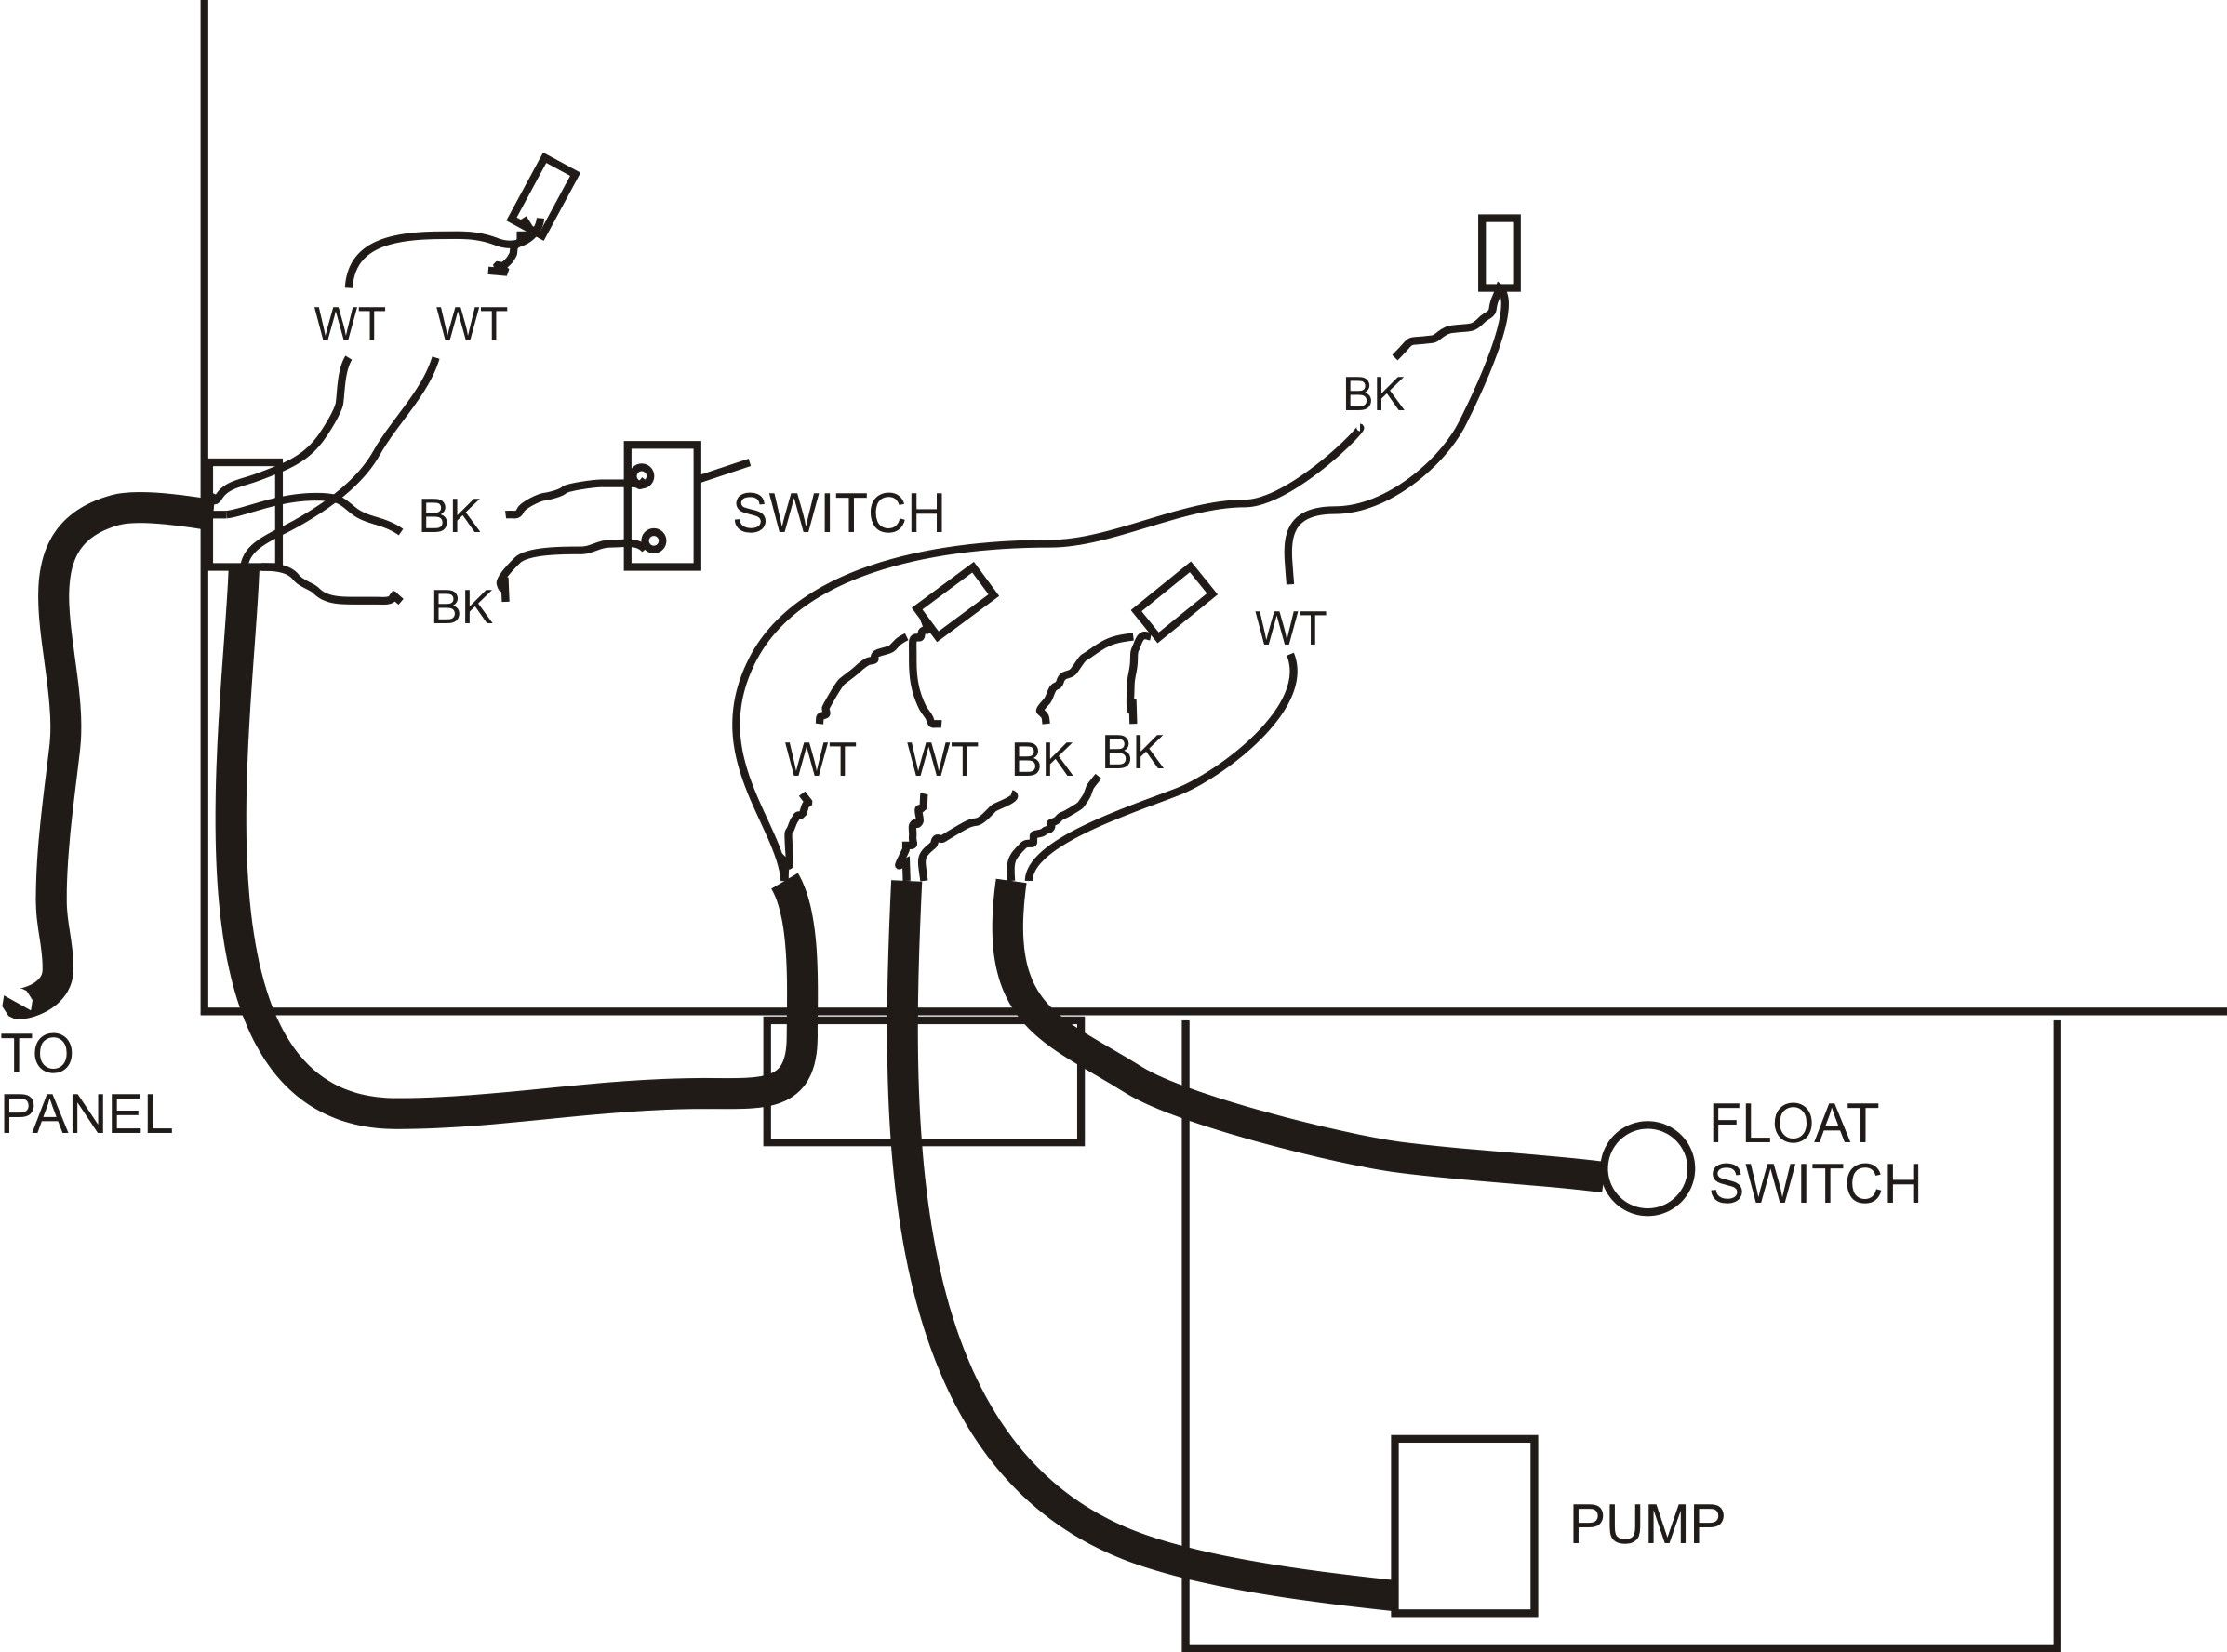 Wiring A Water Well Pump Control And Switch - Fav Wiring Diagram on